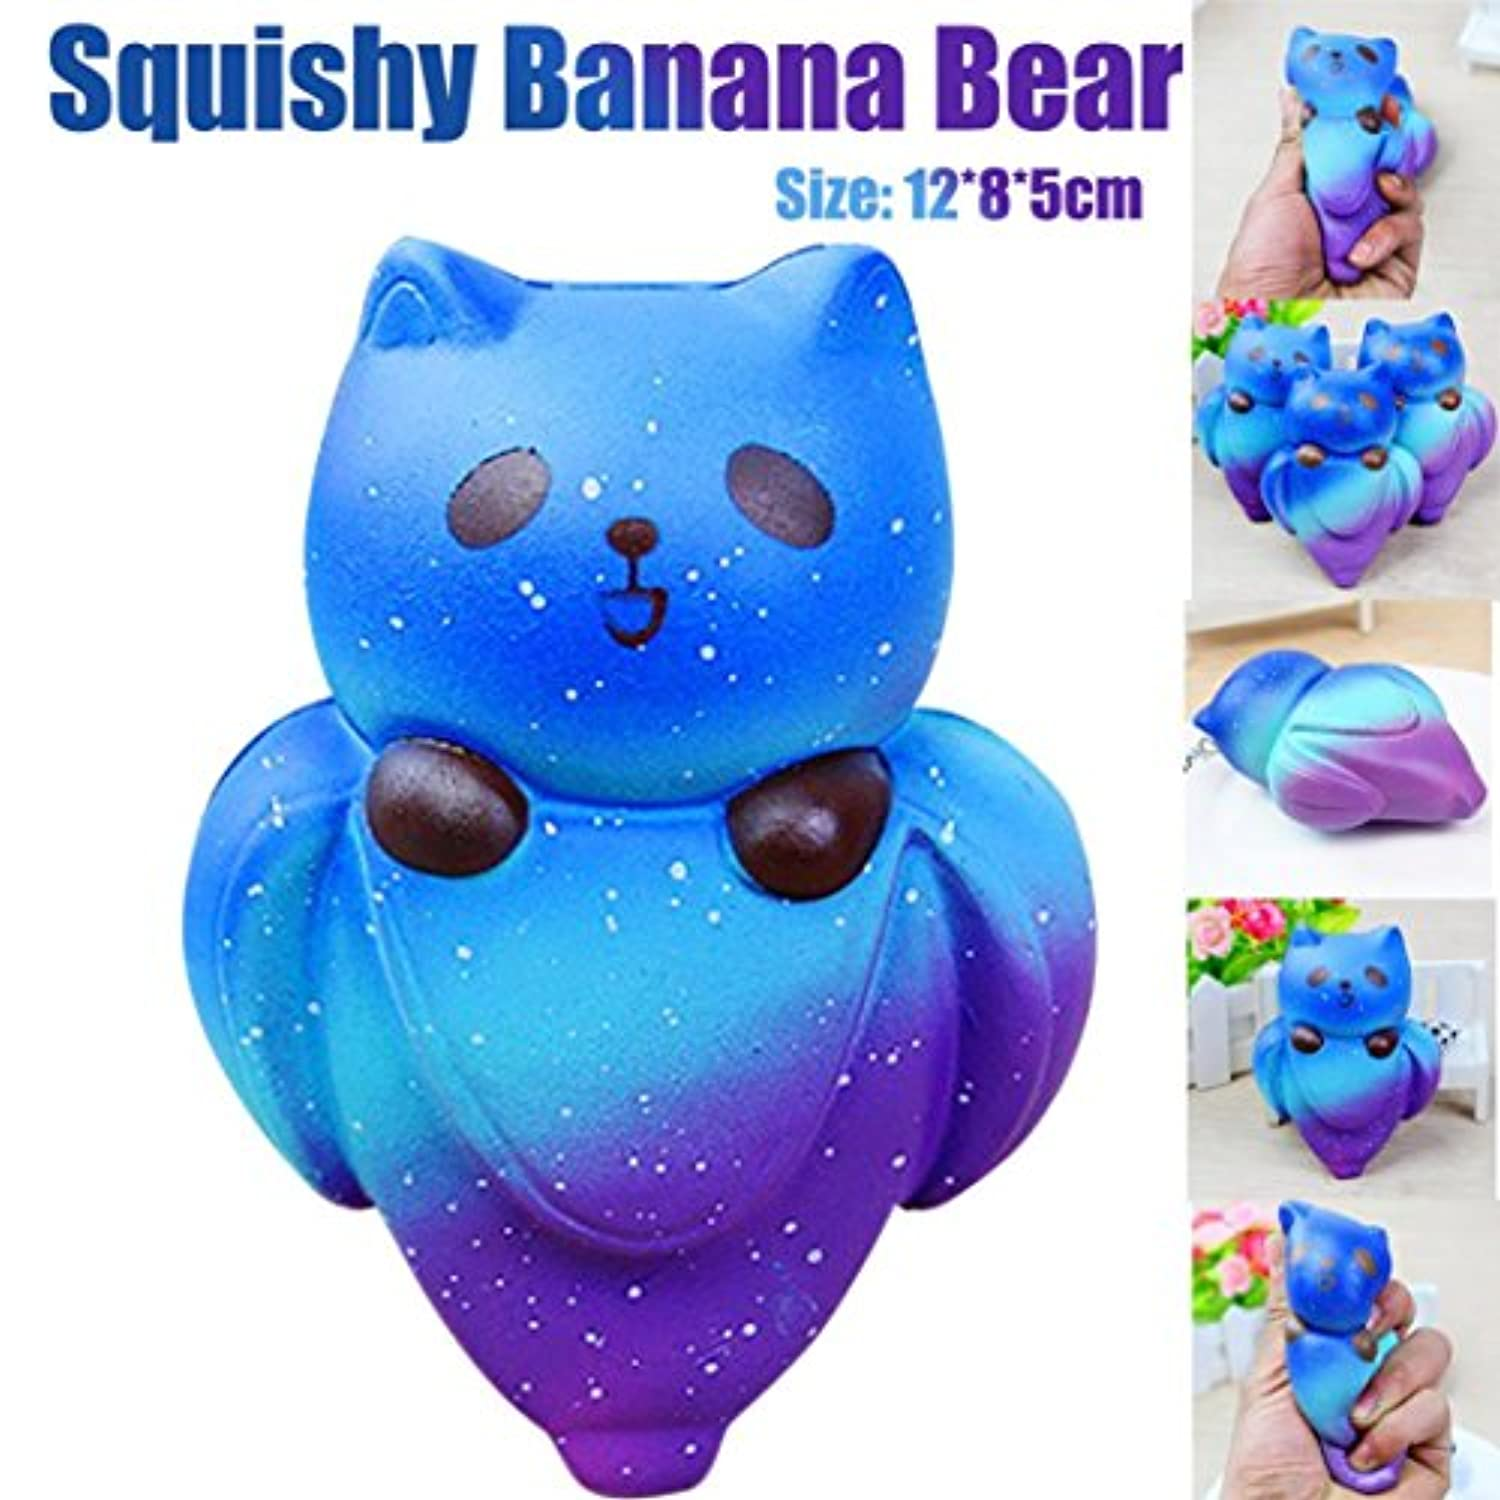 Rosiest低価格KawaiiカットStarryキュート12 cmバナナベアクリーム香りつきSquishy Slow Rising Squeeze Kids Toy SquishボールAnxiety Relief Squish Slow Rising